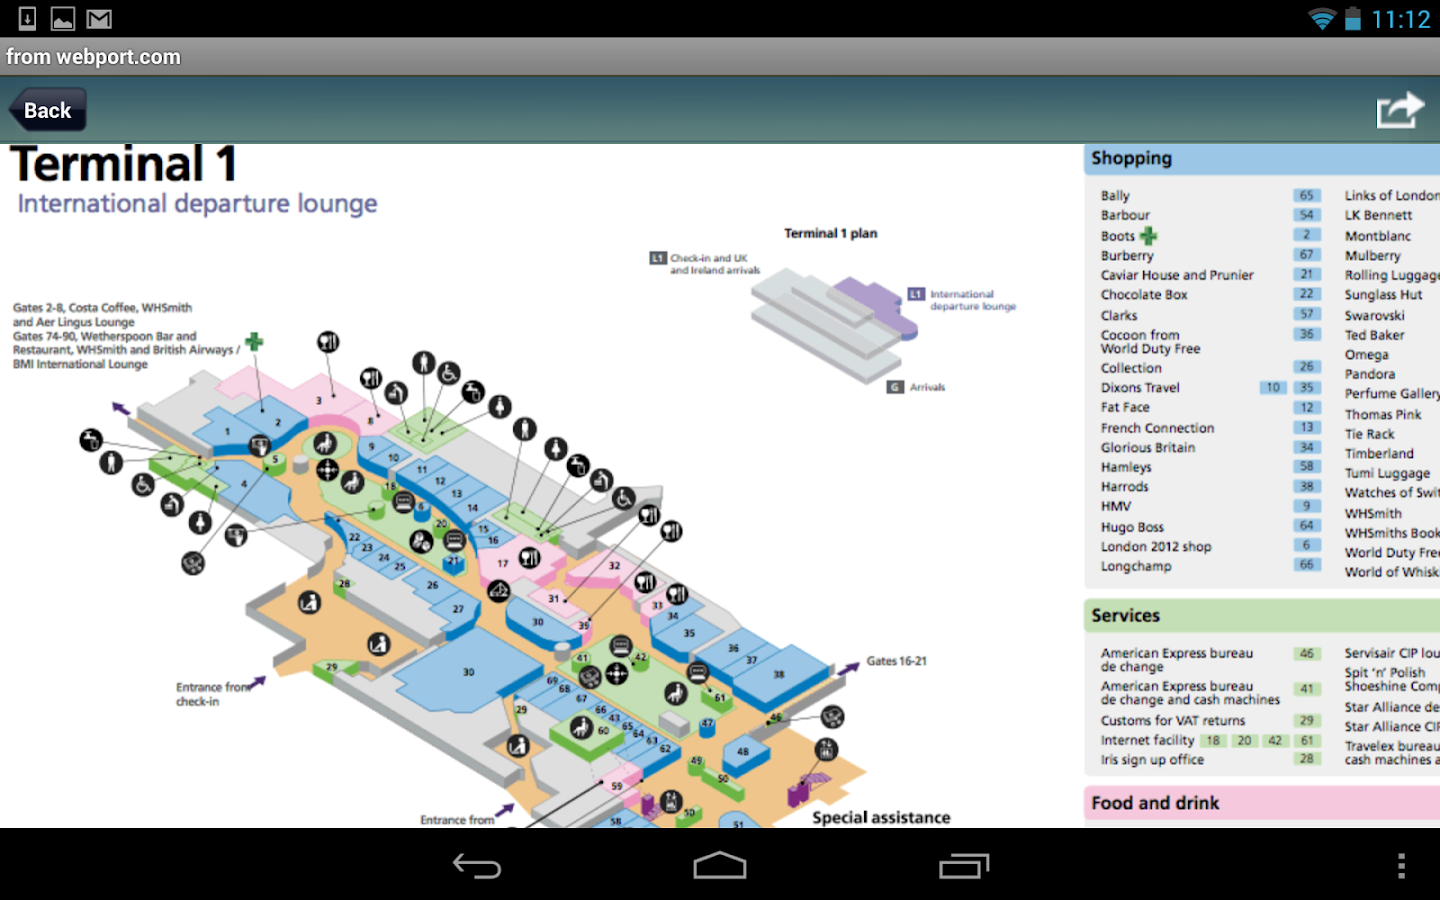 Heathrow Airport LHR Flight Tracker Android Apps on Google Play